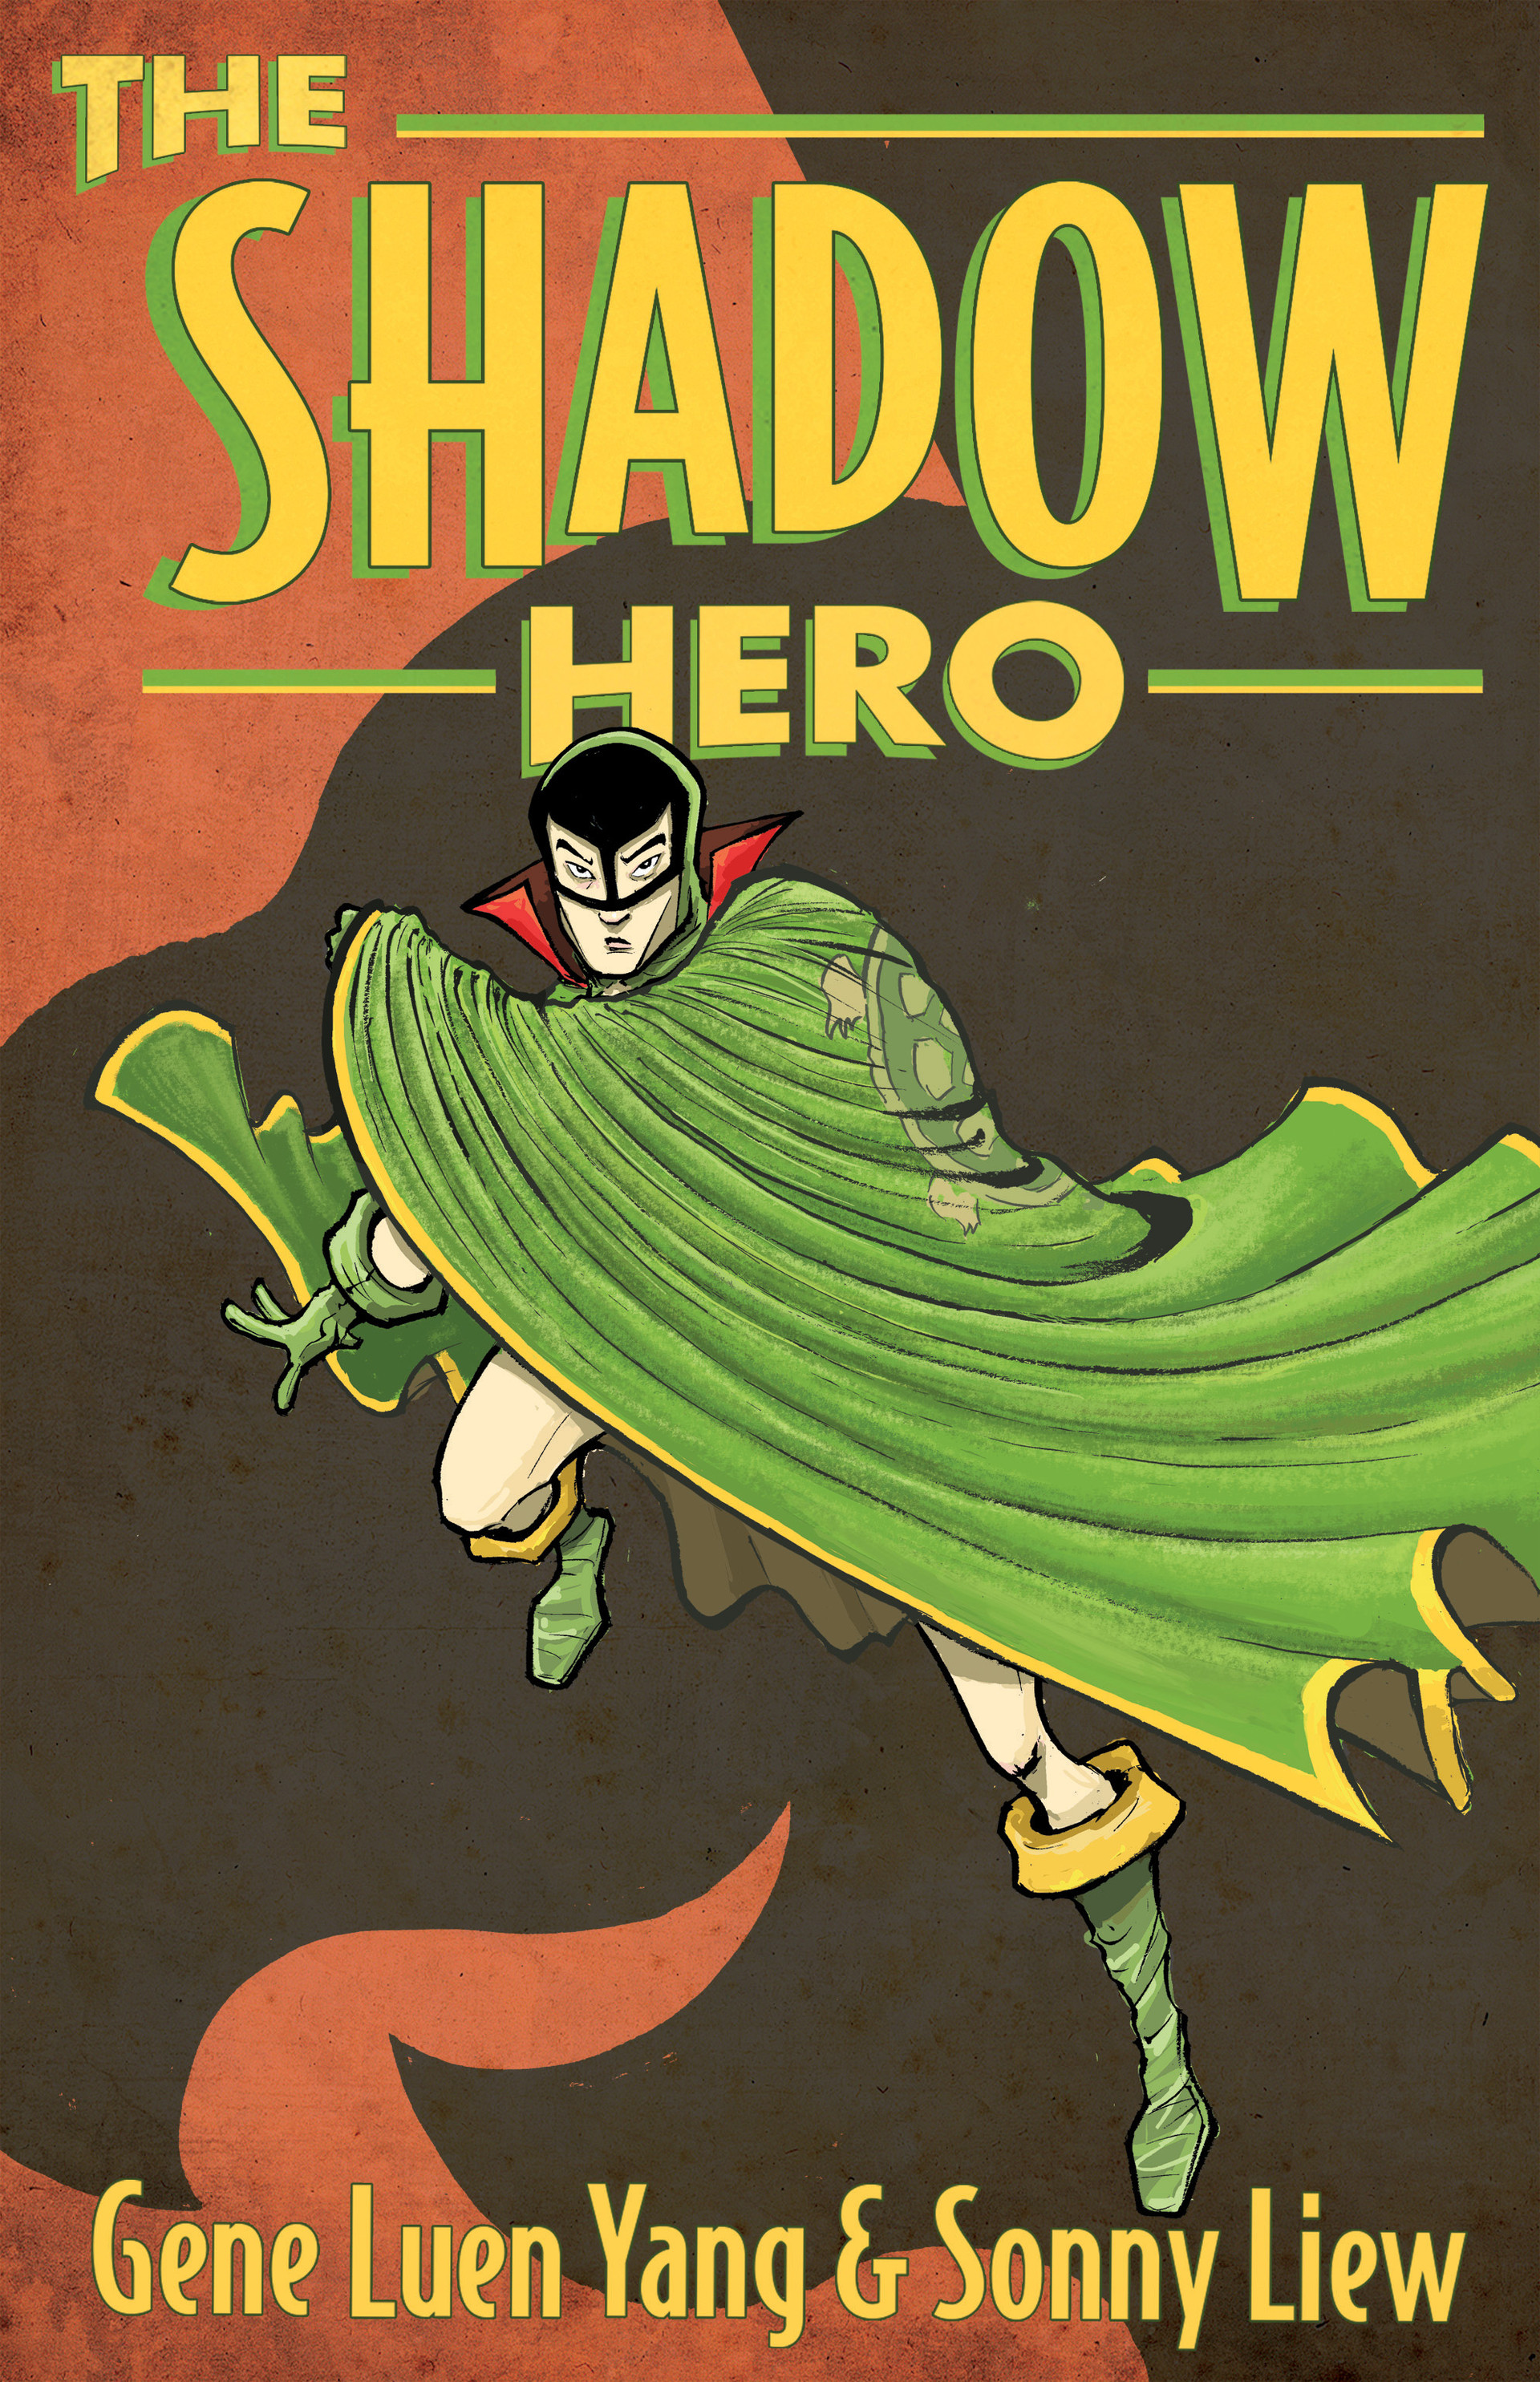 Gene Luen Yang Is The Author Of The Shadow Hero, About A Character Who Many